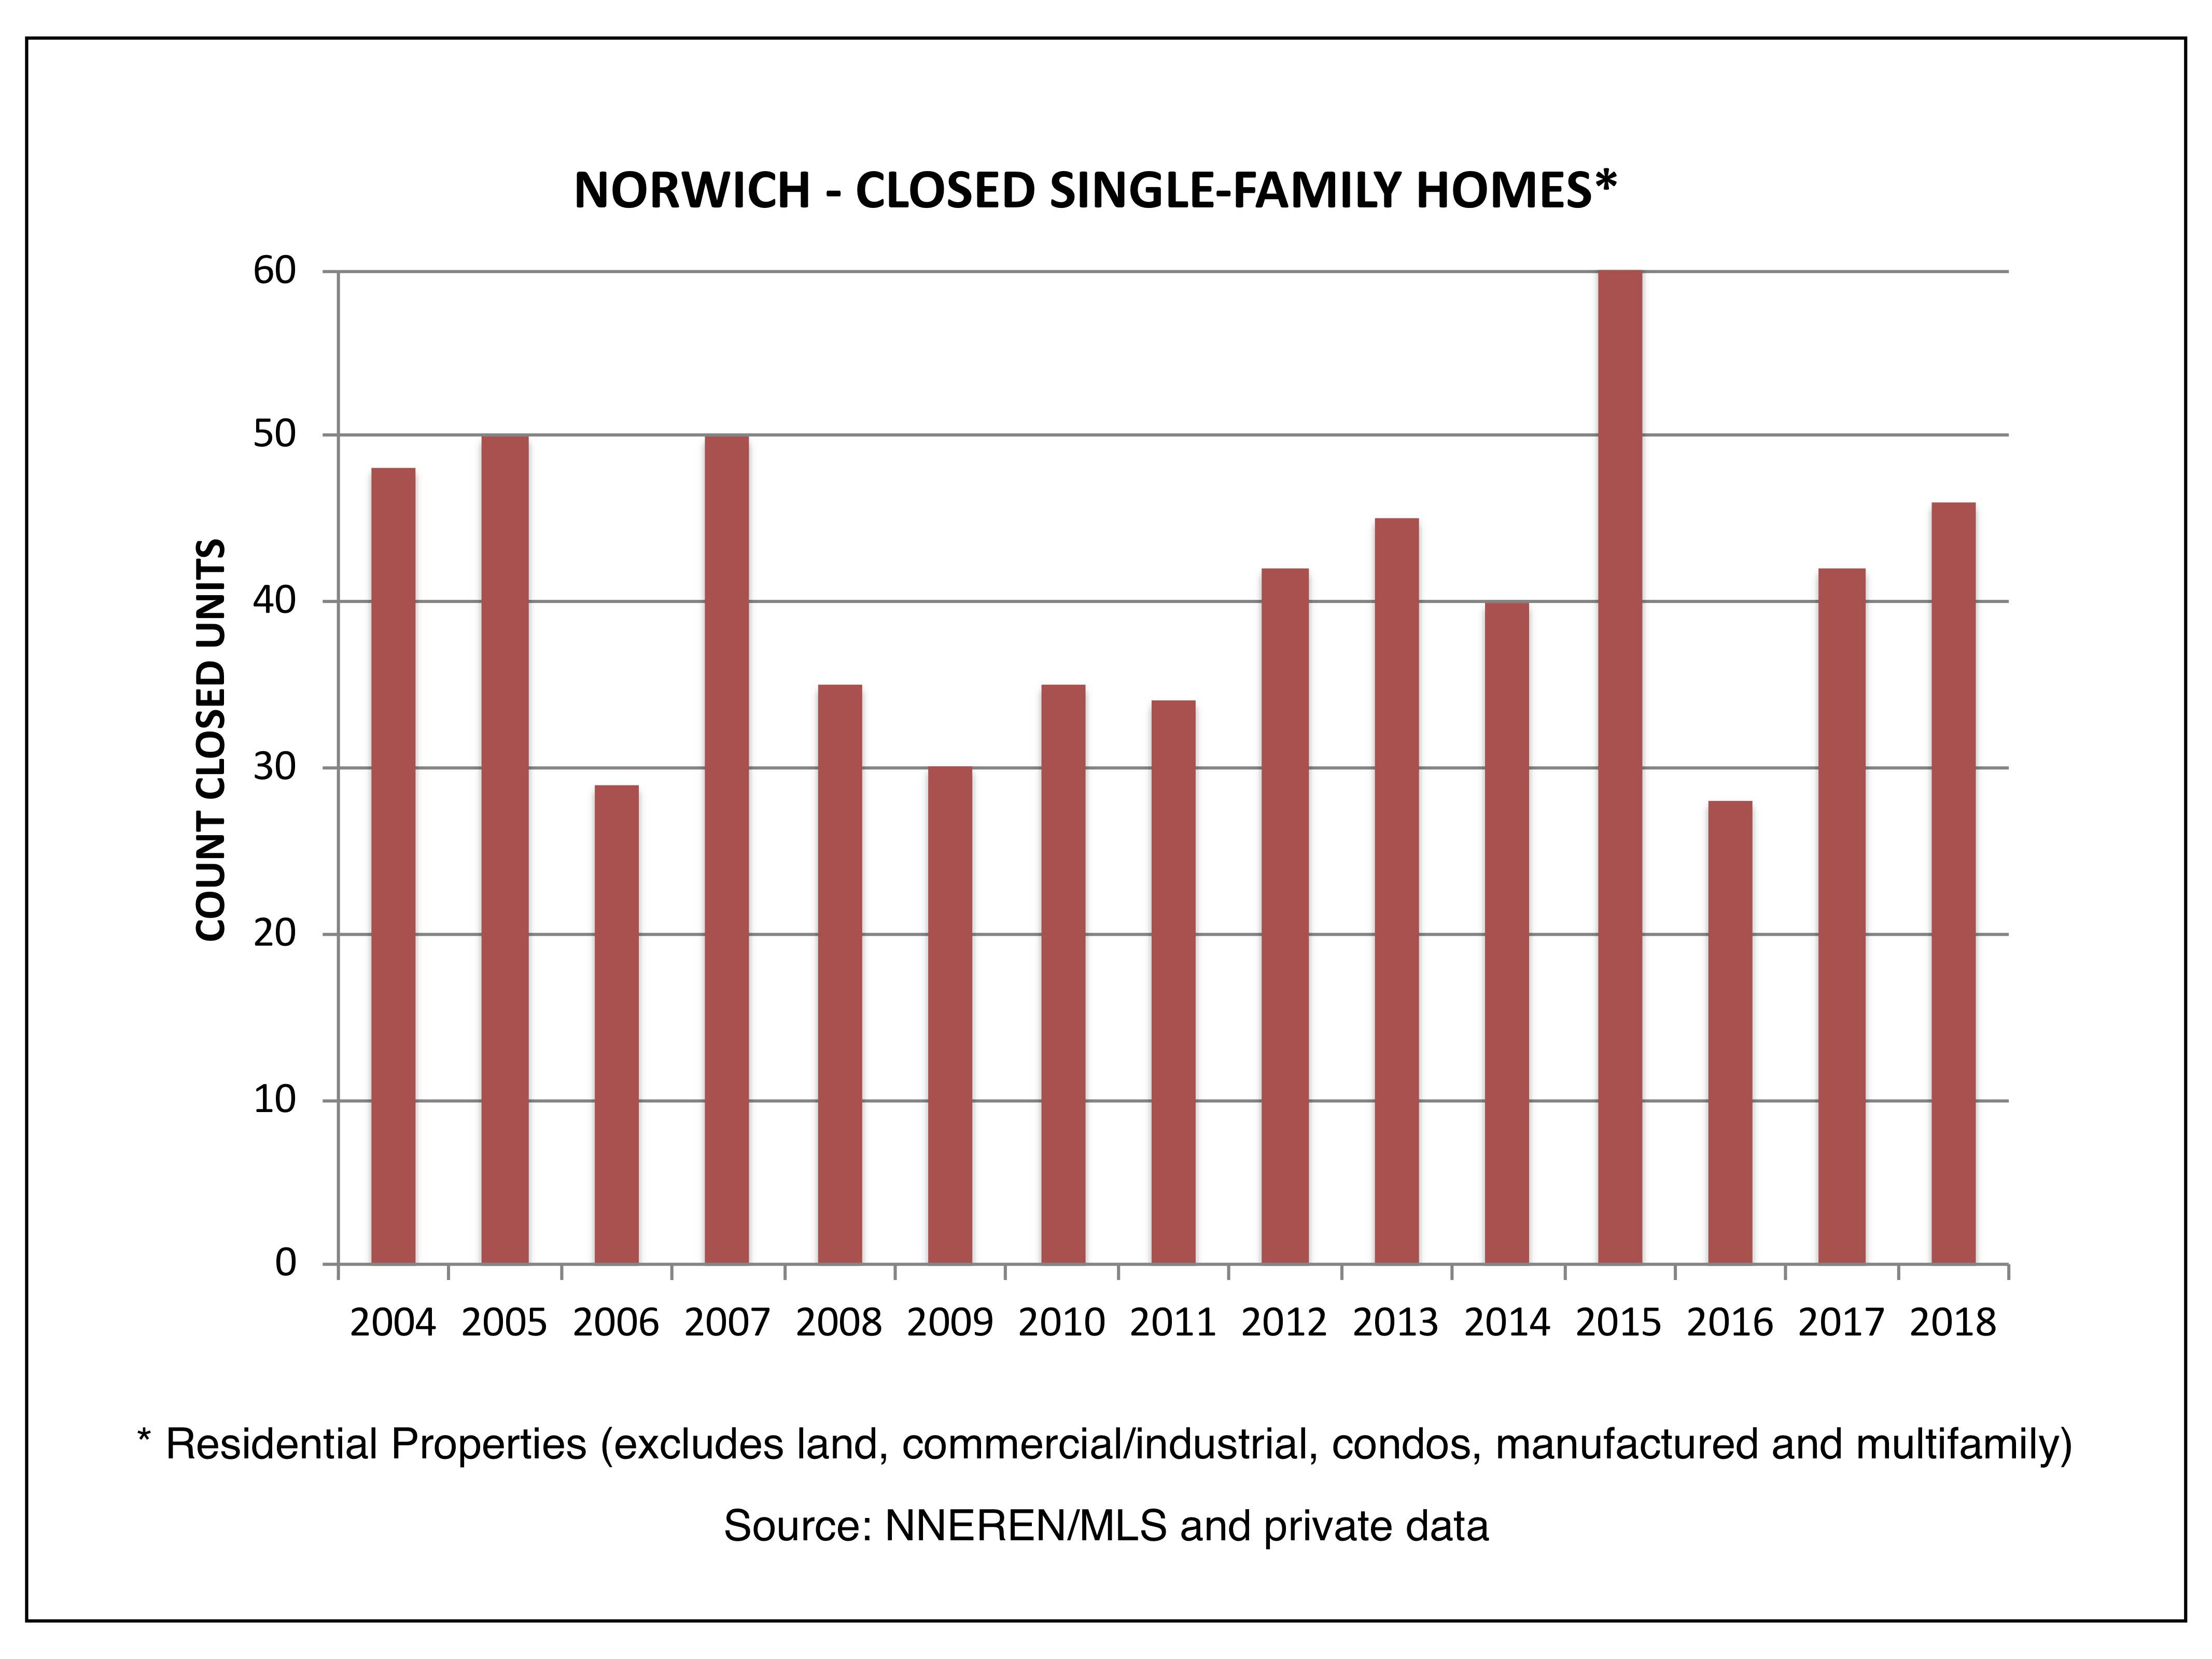 Norwich VT Real Estate - Closed Single Family Homes